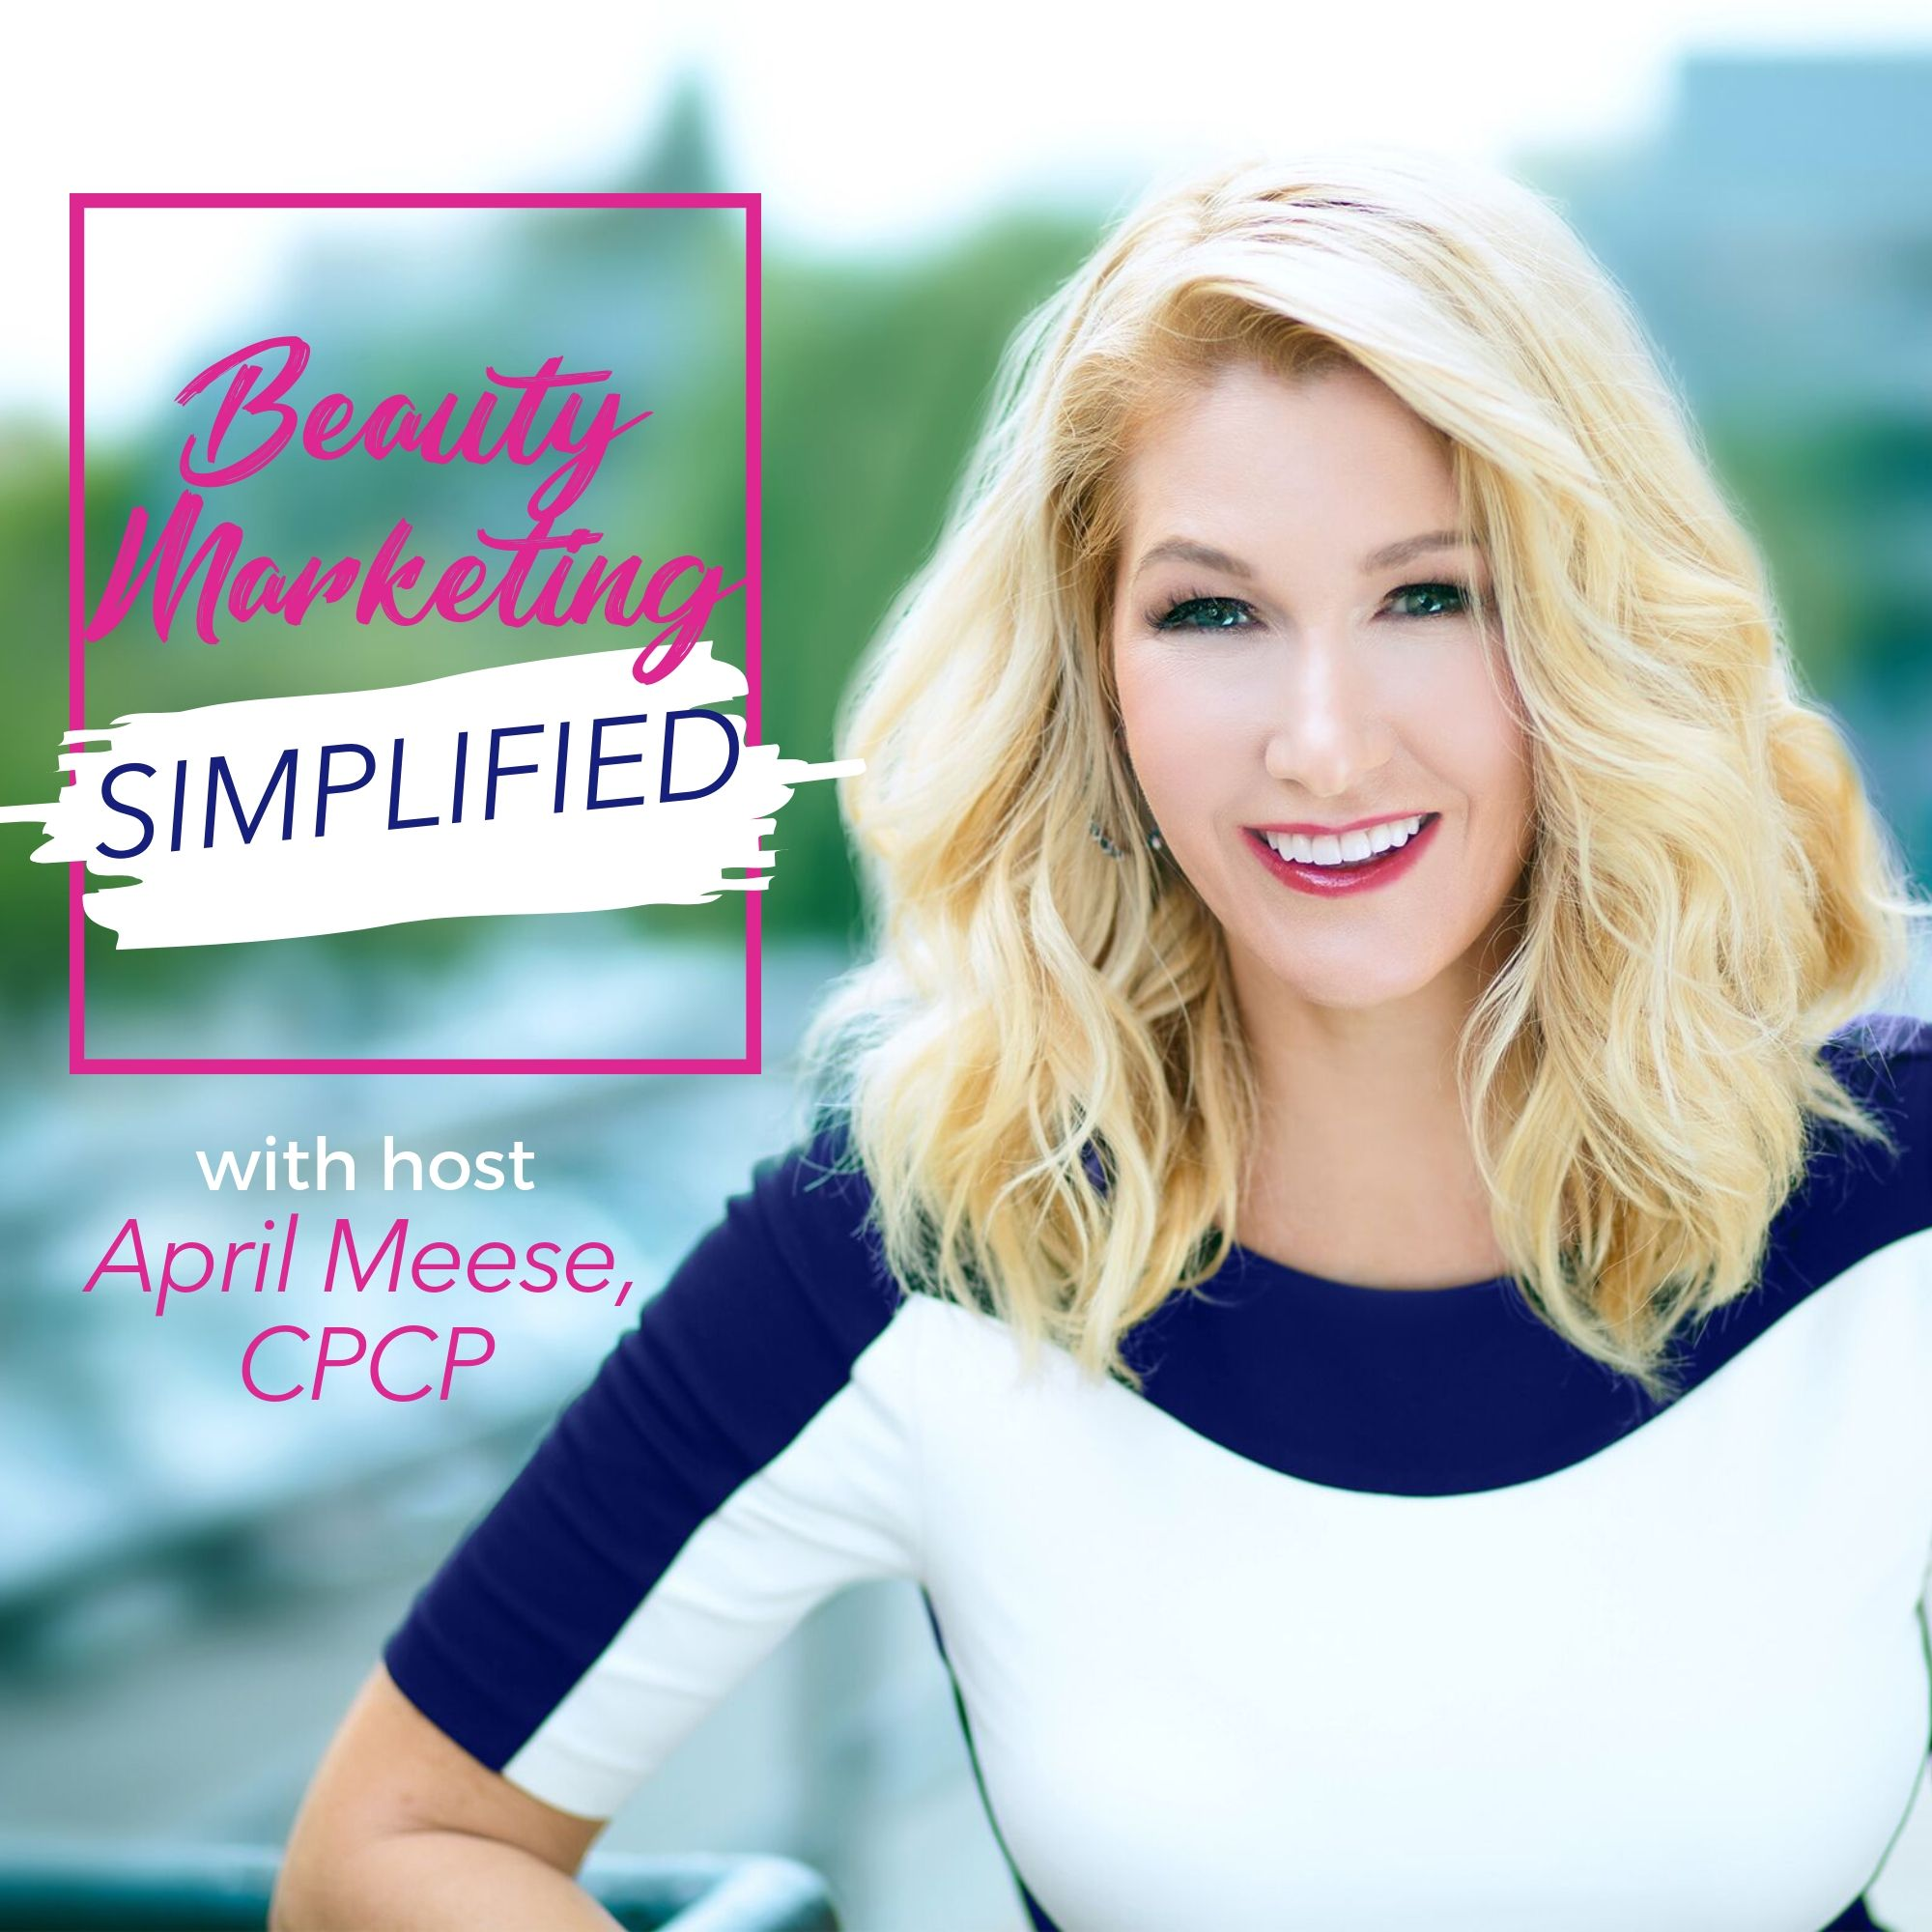 Beauty Marketing Simplified podcast